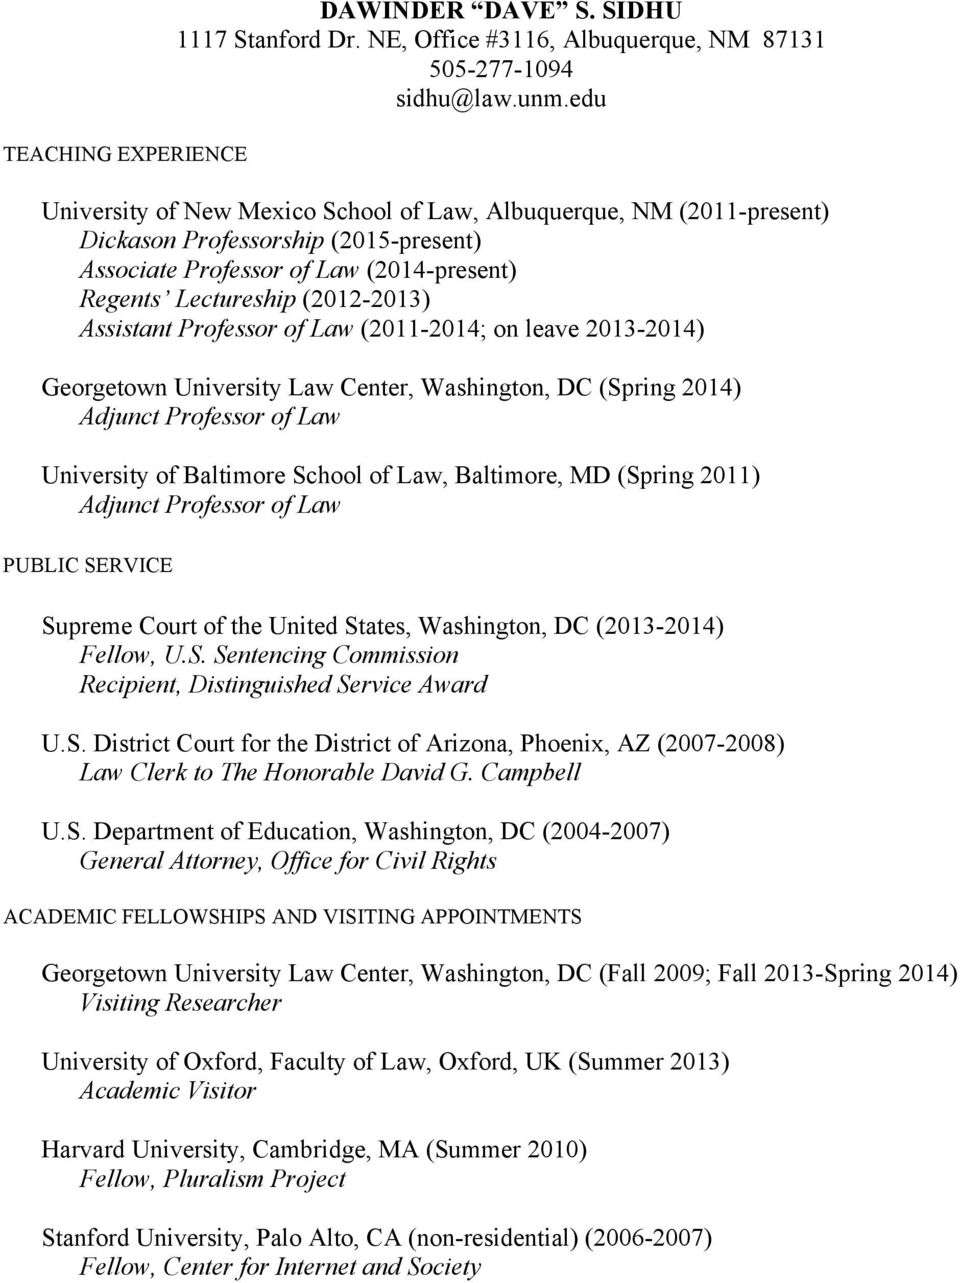 Professor of Law (2011-2014; on leave 2013-2014) Georgetown University Law Center, Washington, DC (Spring 2014) Adjunct Professor of Law University of Baltimore School of Law, Baltimore, MD (Spring